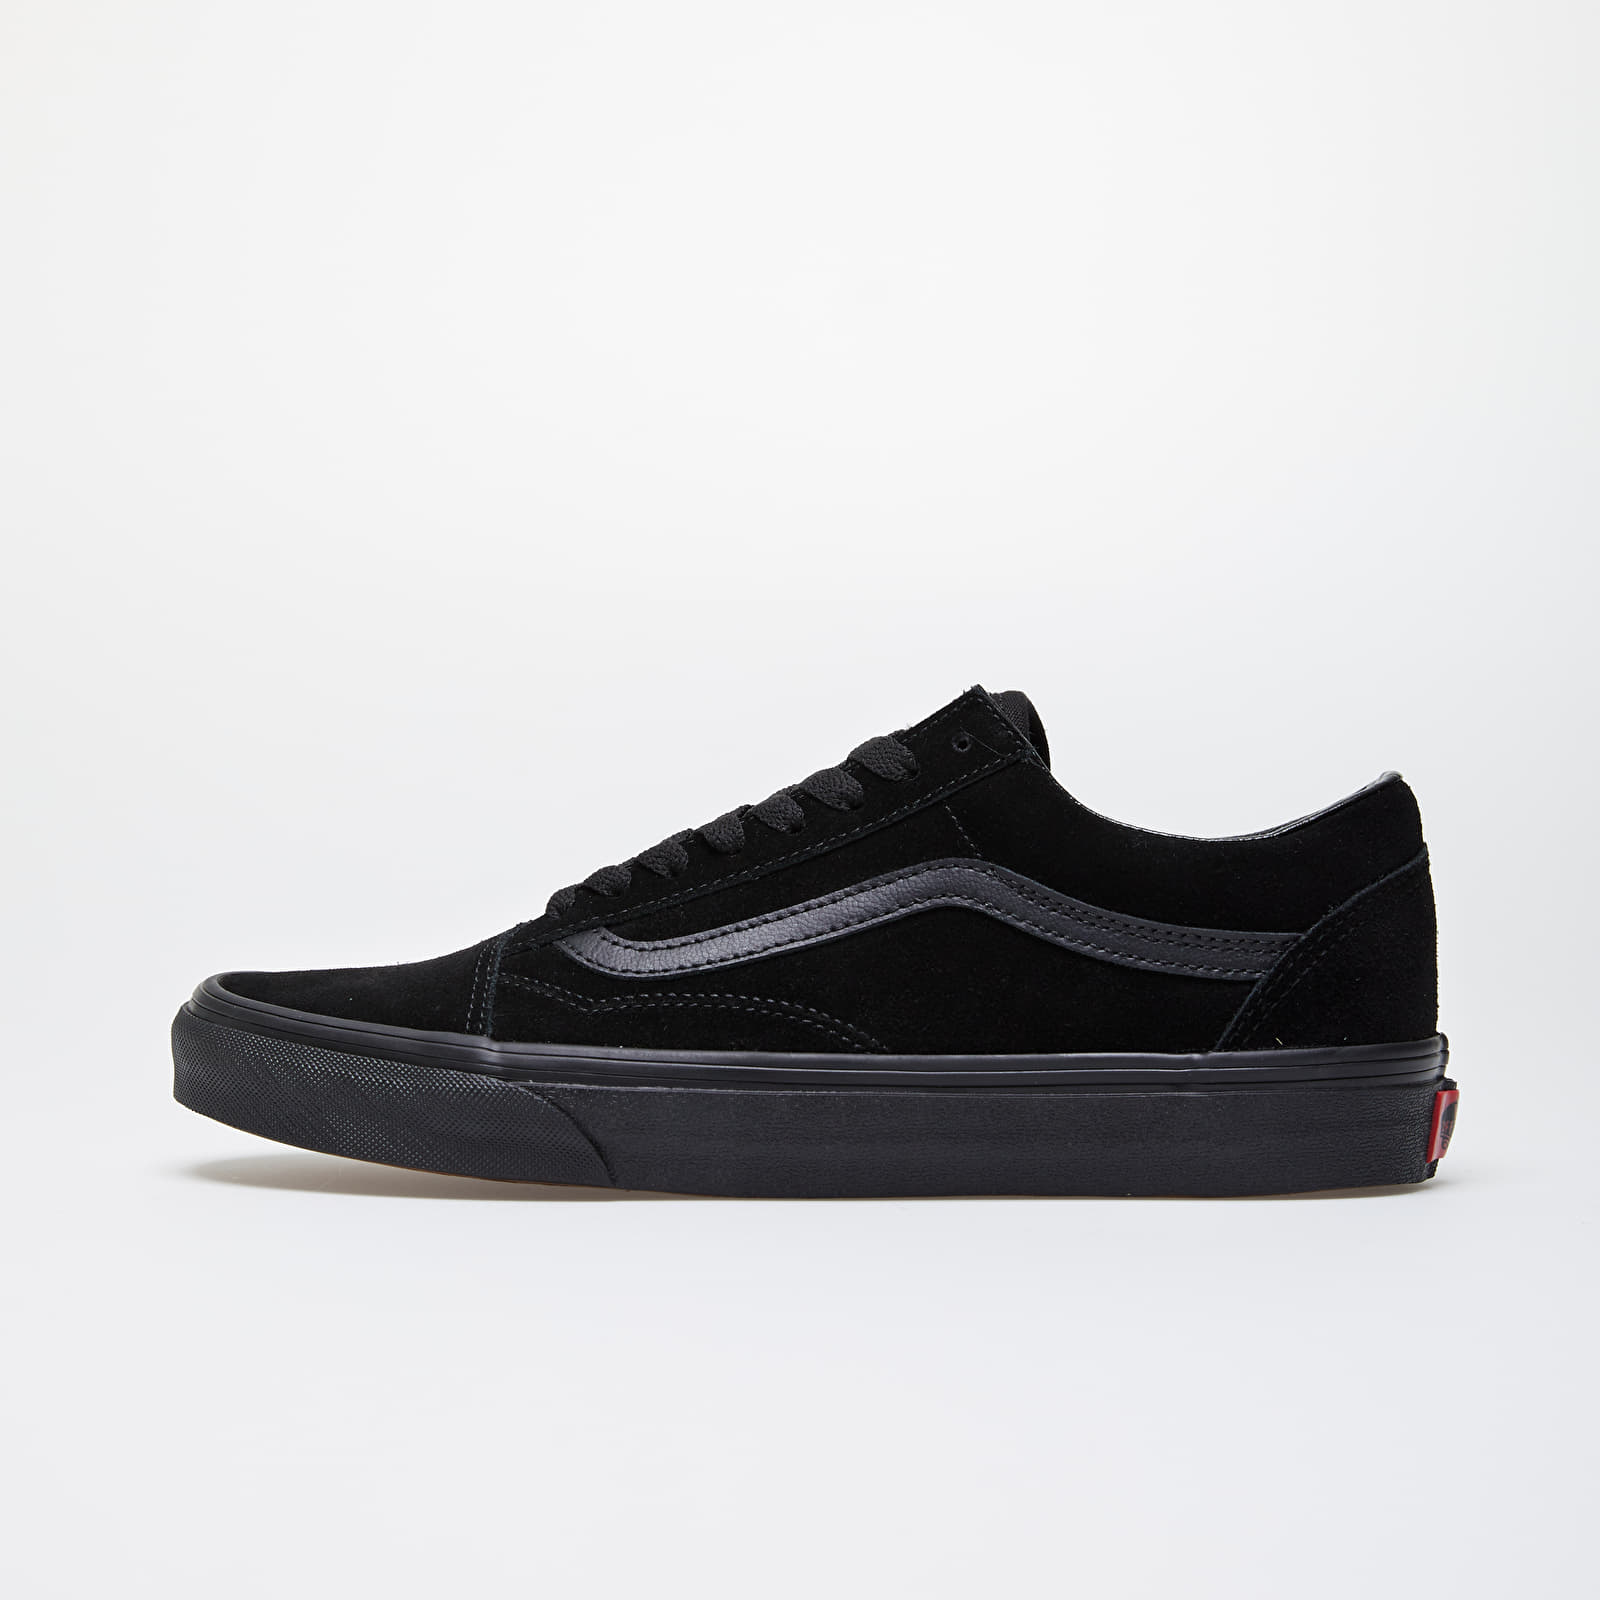 Ανδρικά παπούτσια Vans Old Skool (Suede) Black/ Black/ Black